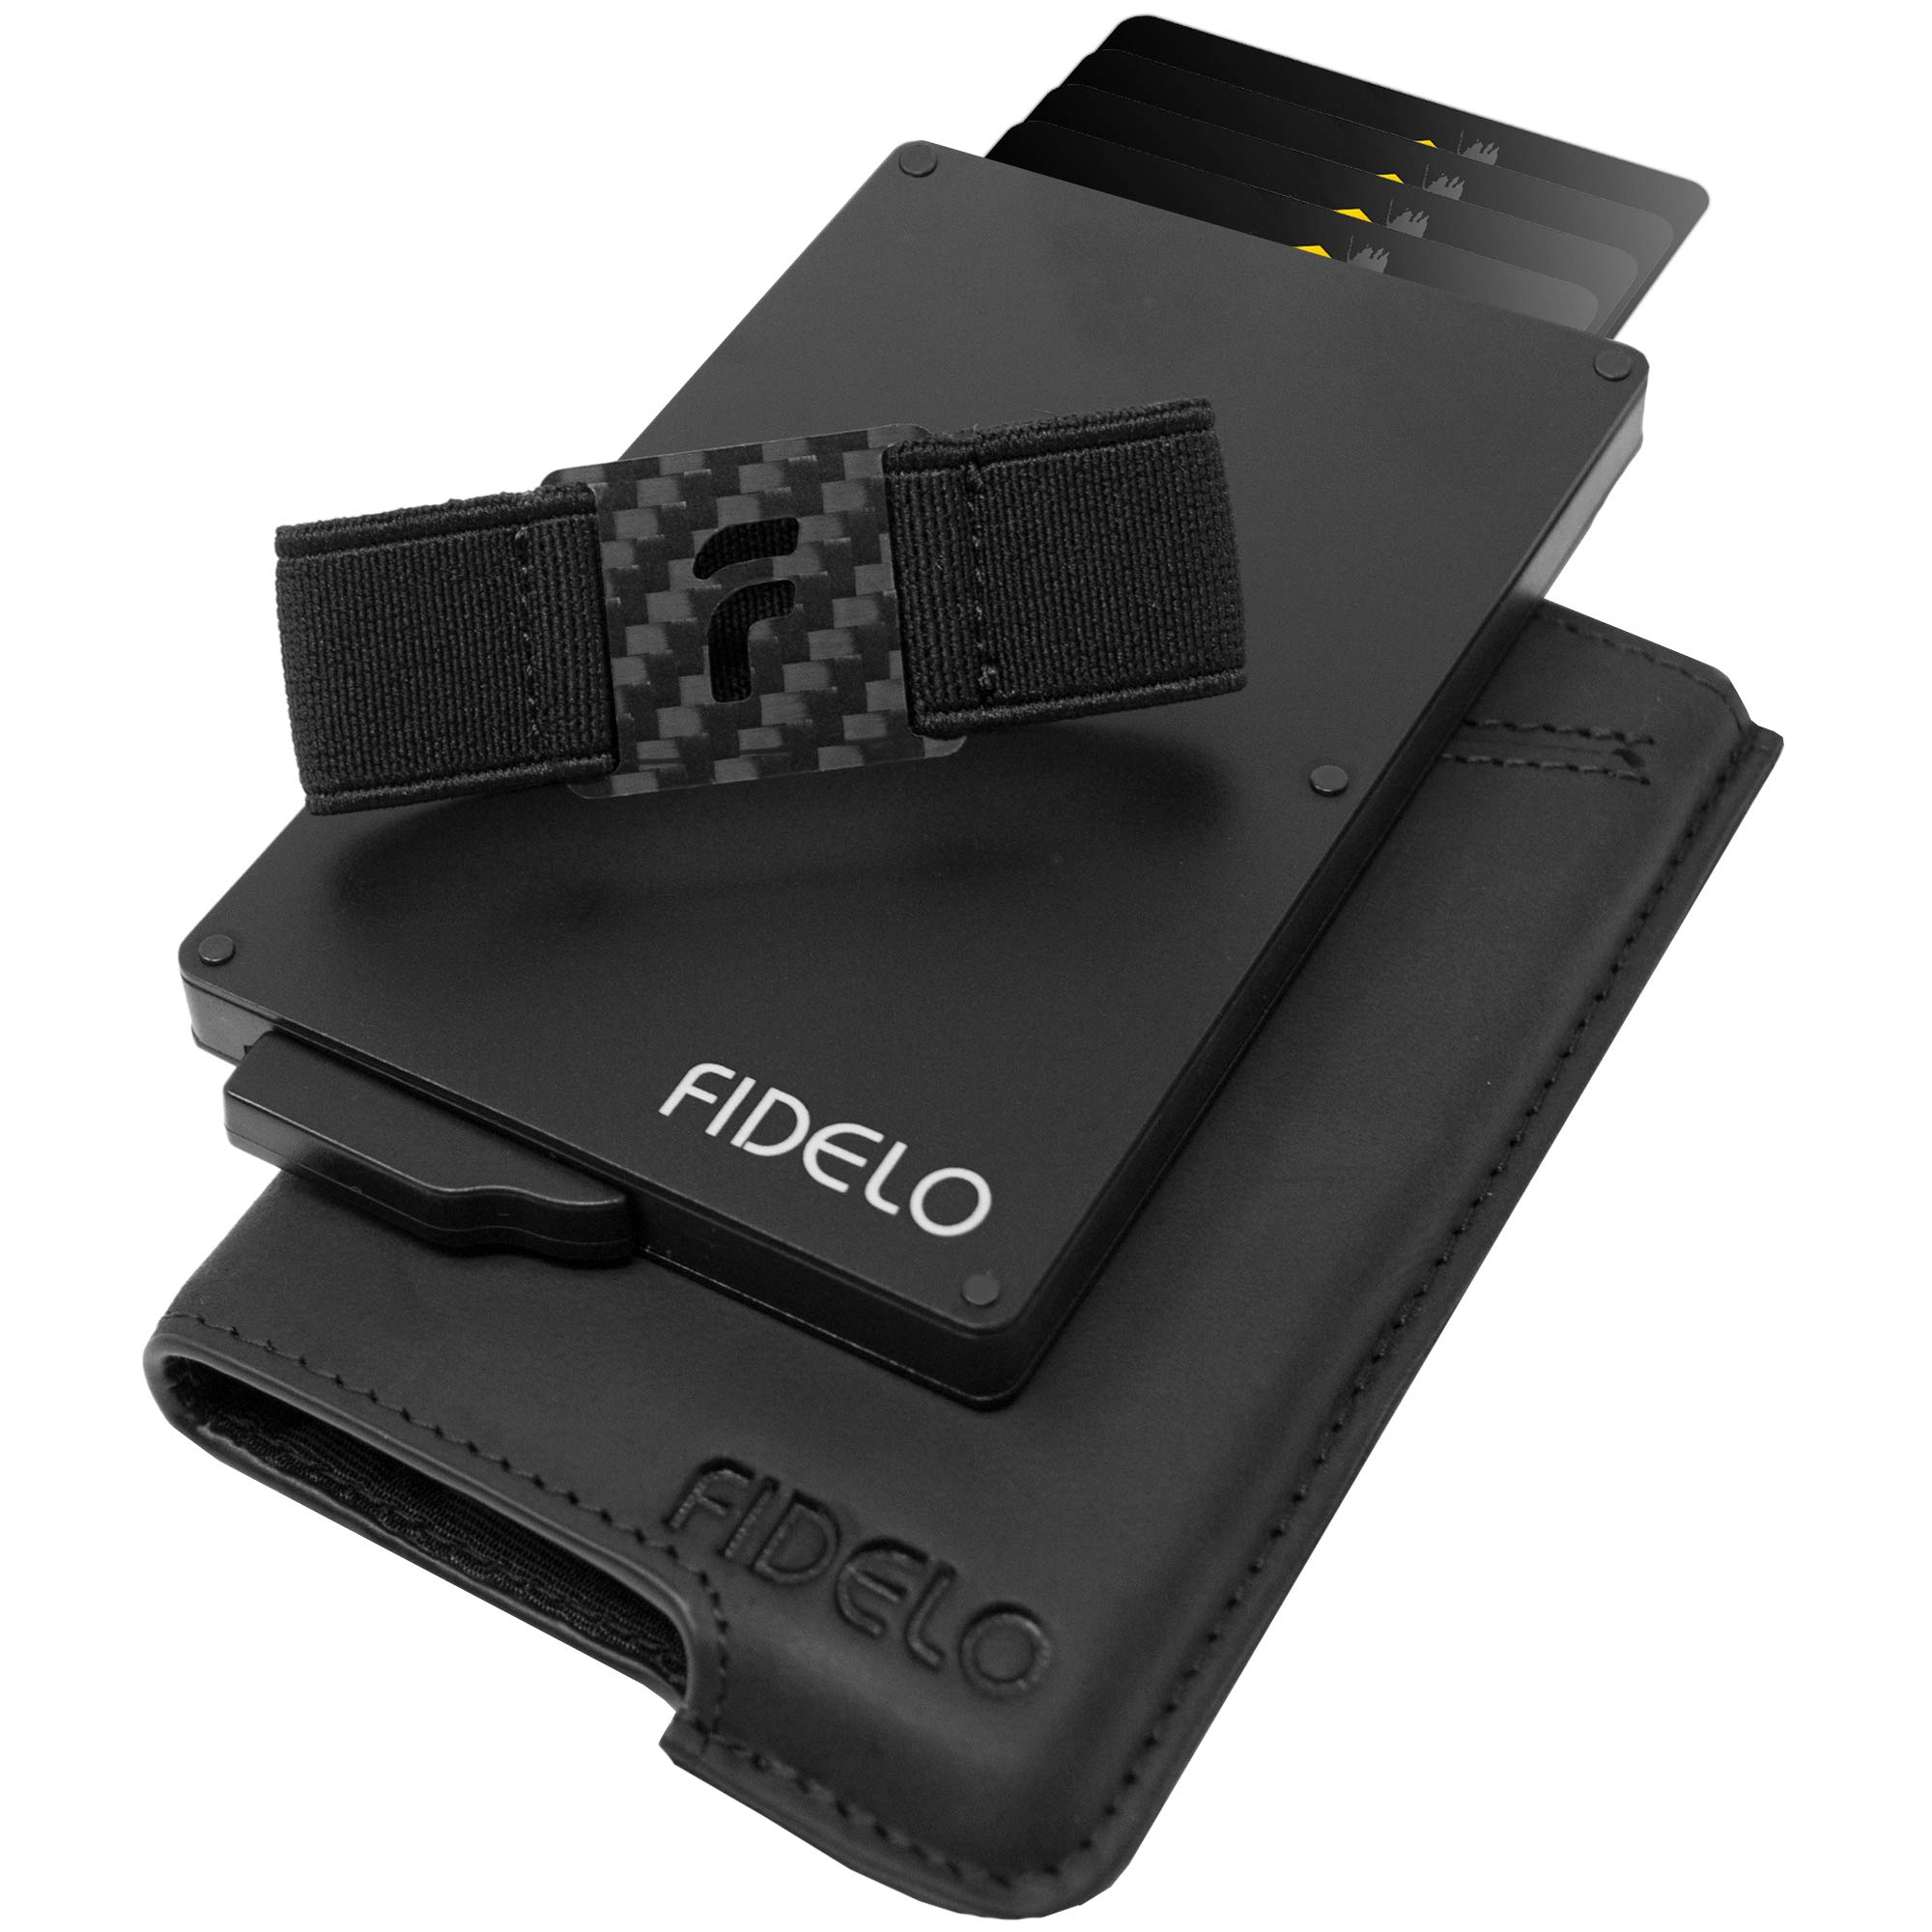 FIDELO Minimalist Wallet for Men - Slim Credit Card Holder RFID Mens Wallets and Leather Case by FIDELO